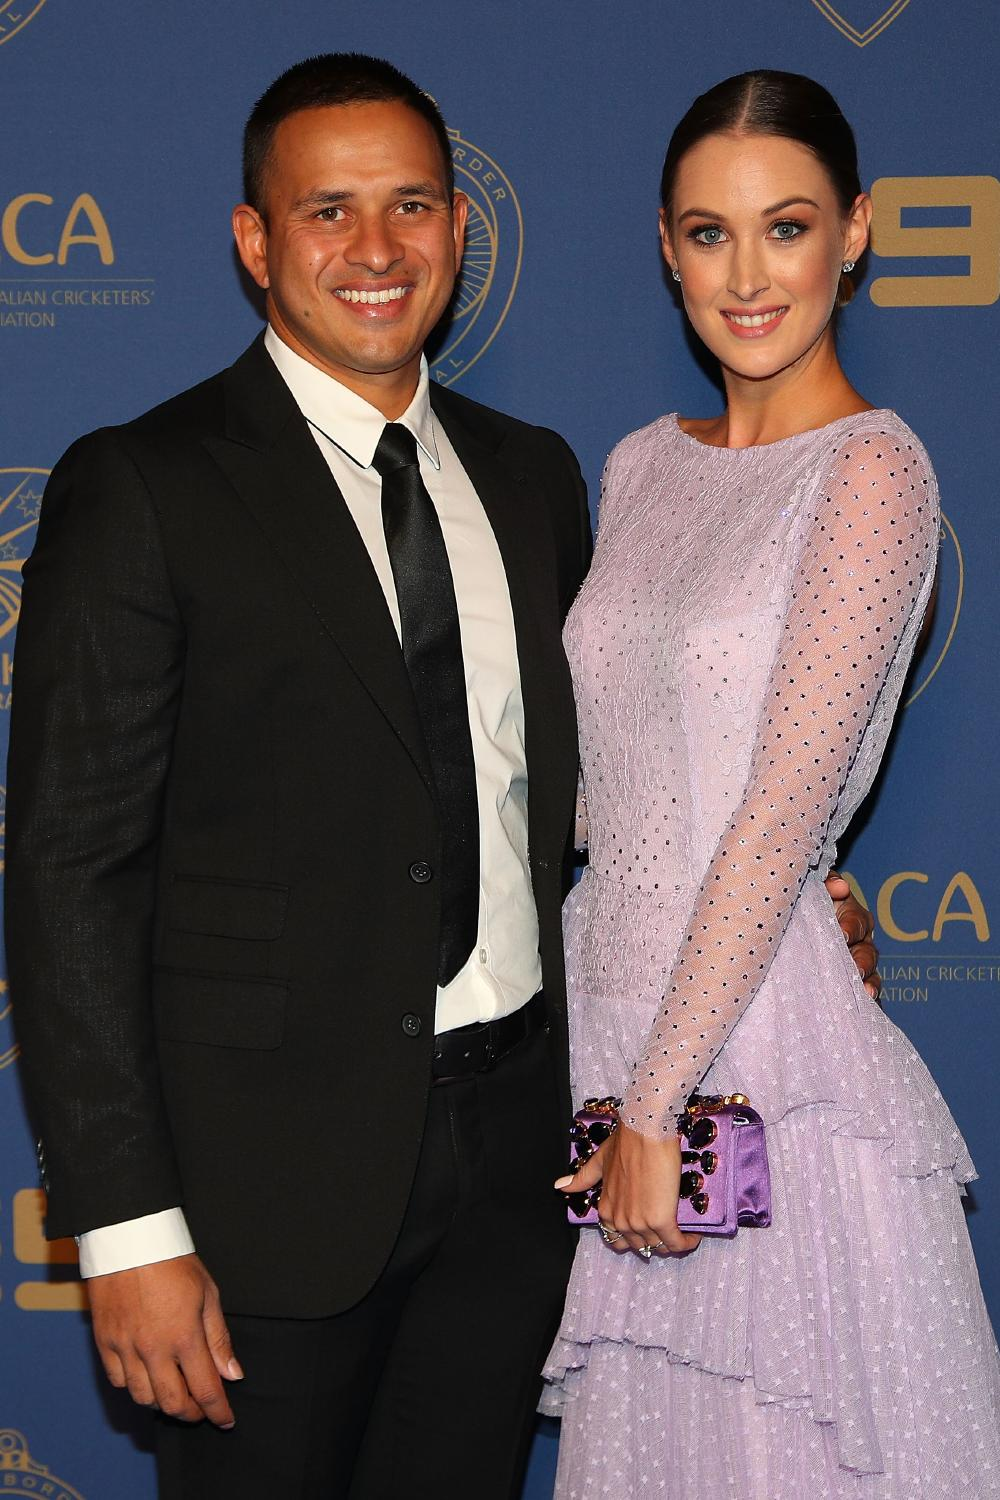 Usman Khawaja and Rachel McLellan at the Allan Border Medal awards night in February.